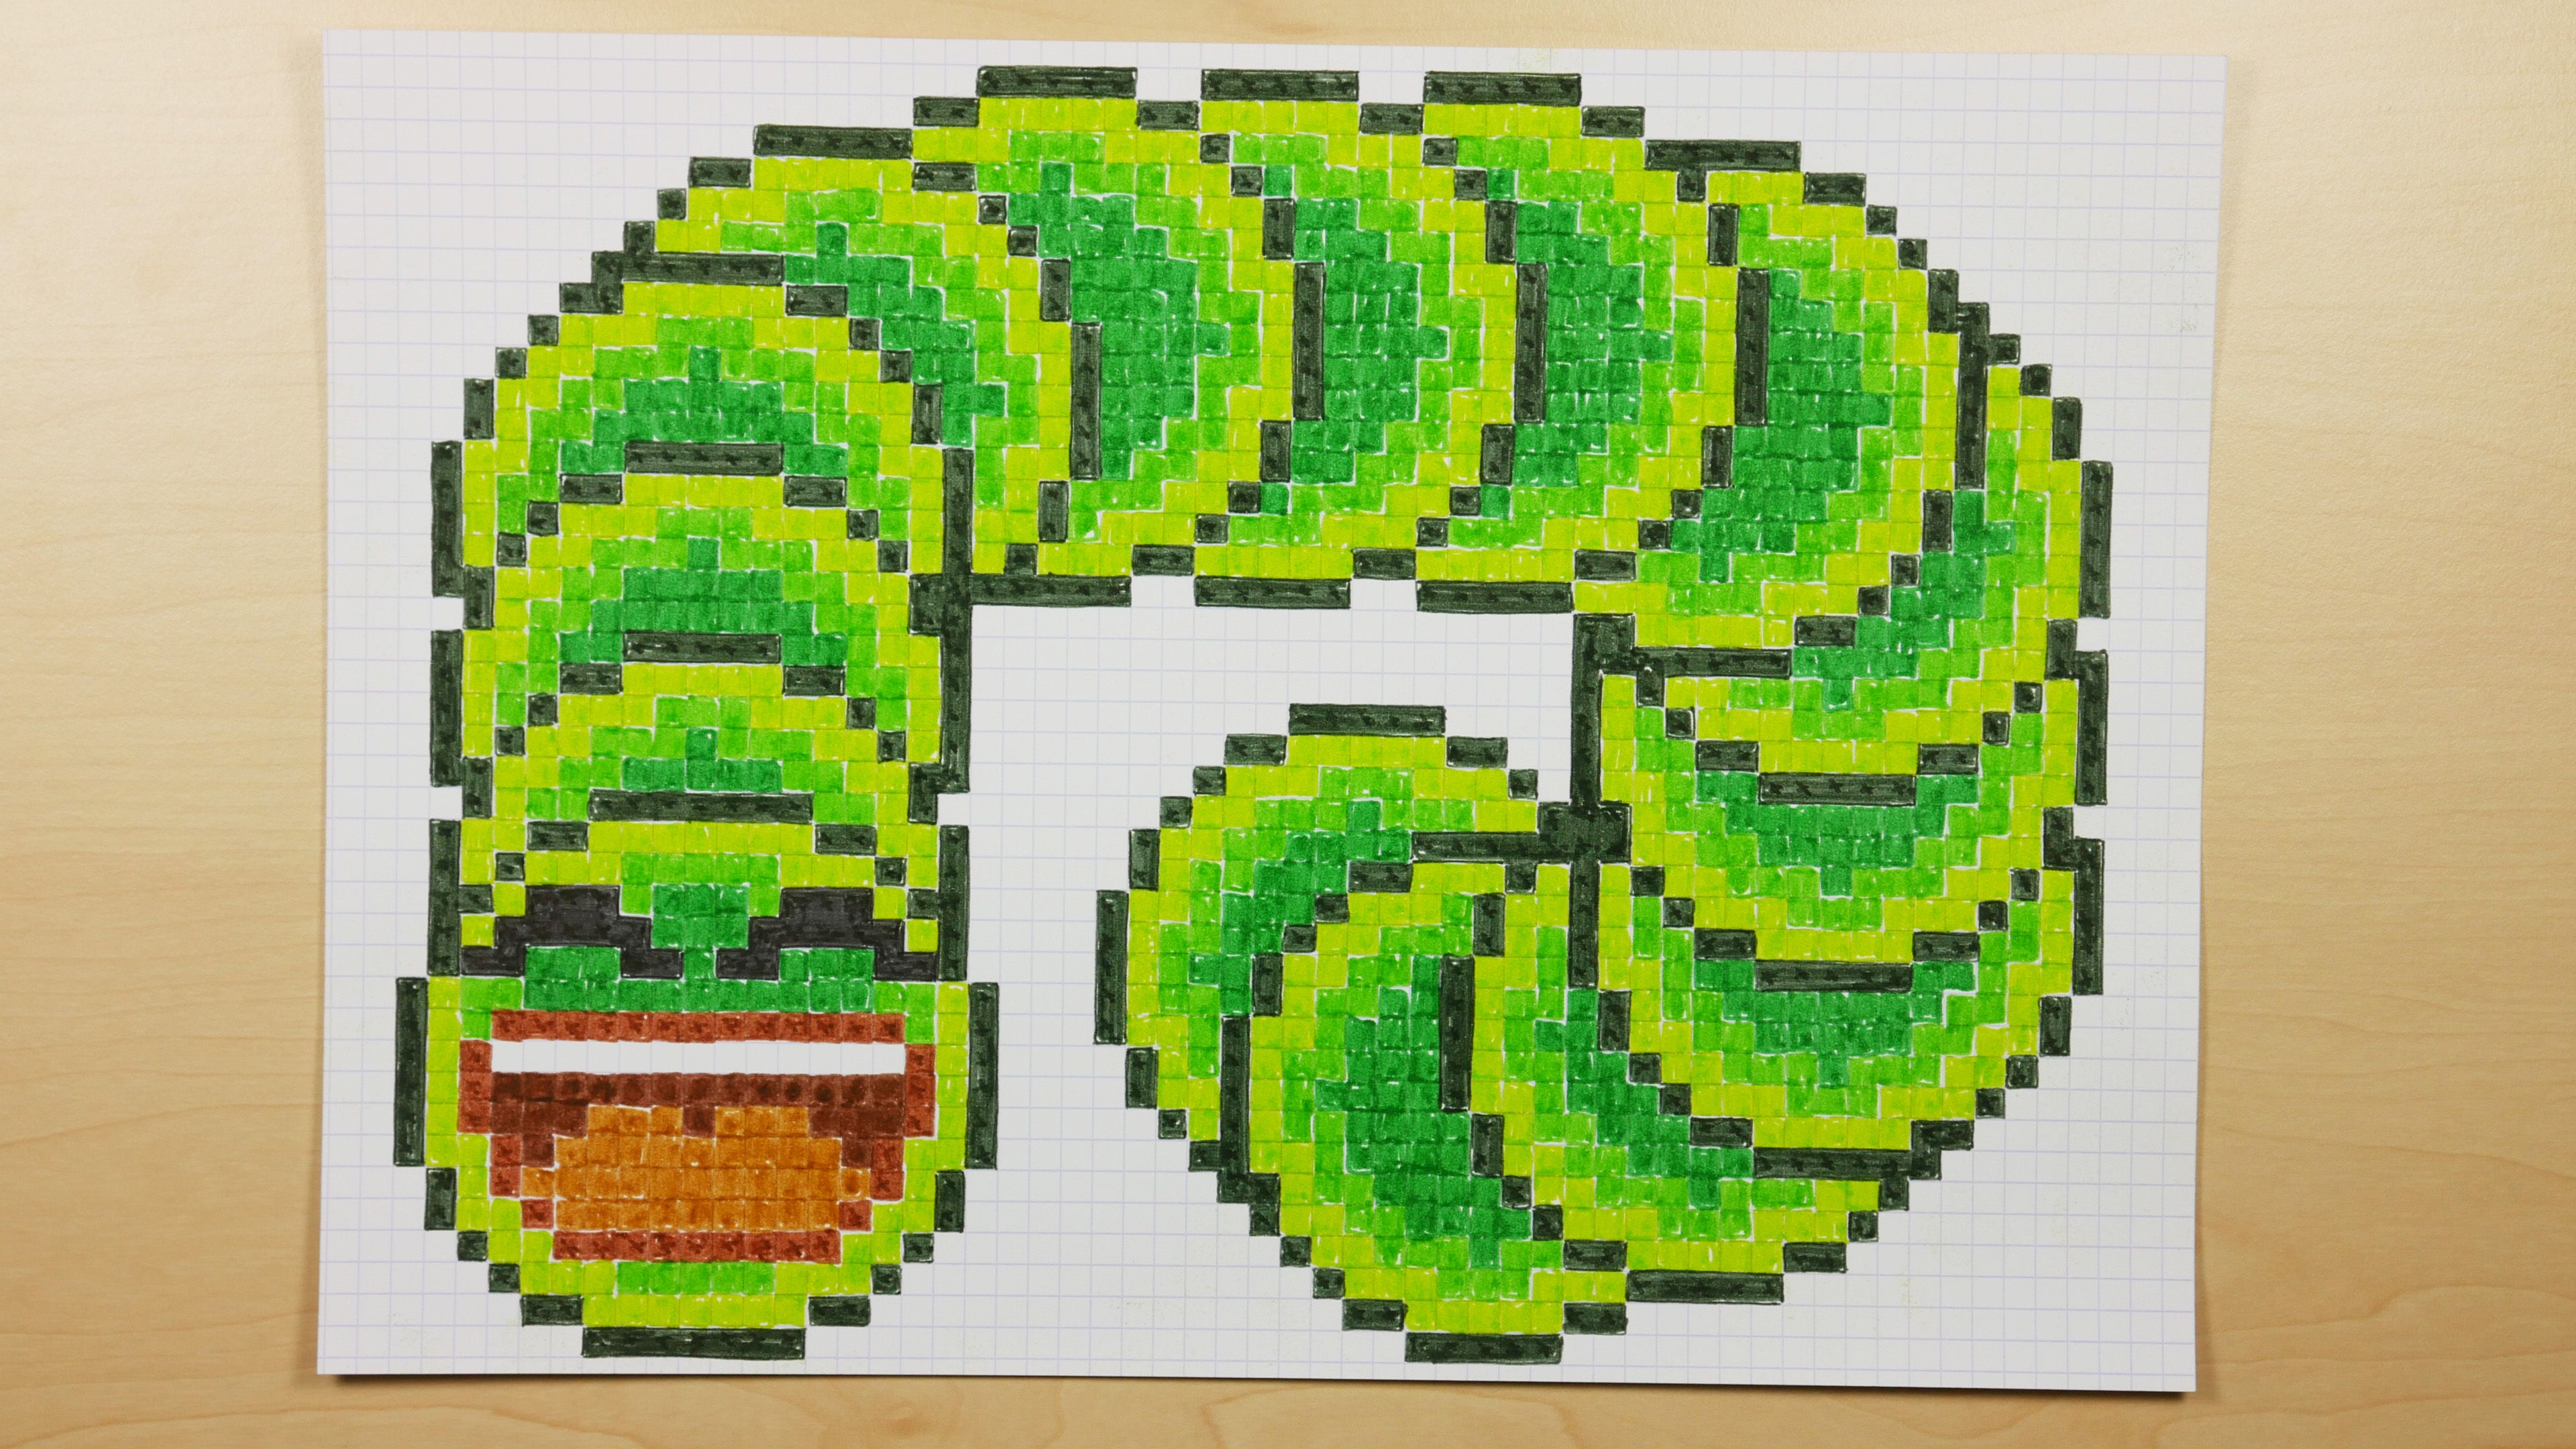 How to Draw a Video Game Slither.io Jelly Snake Pixel